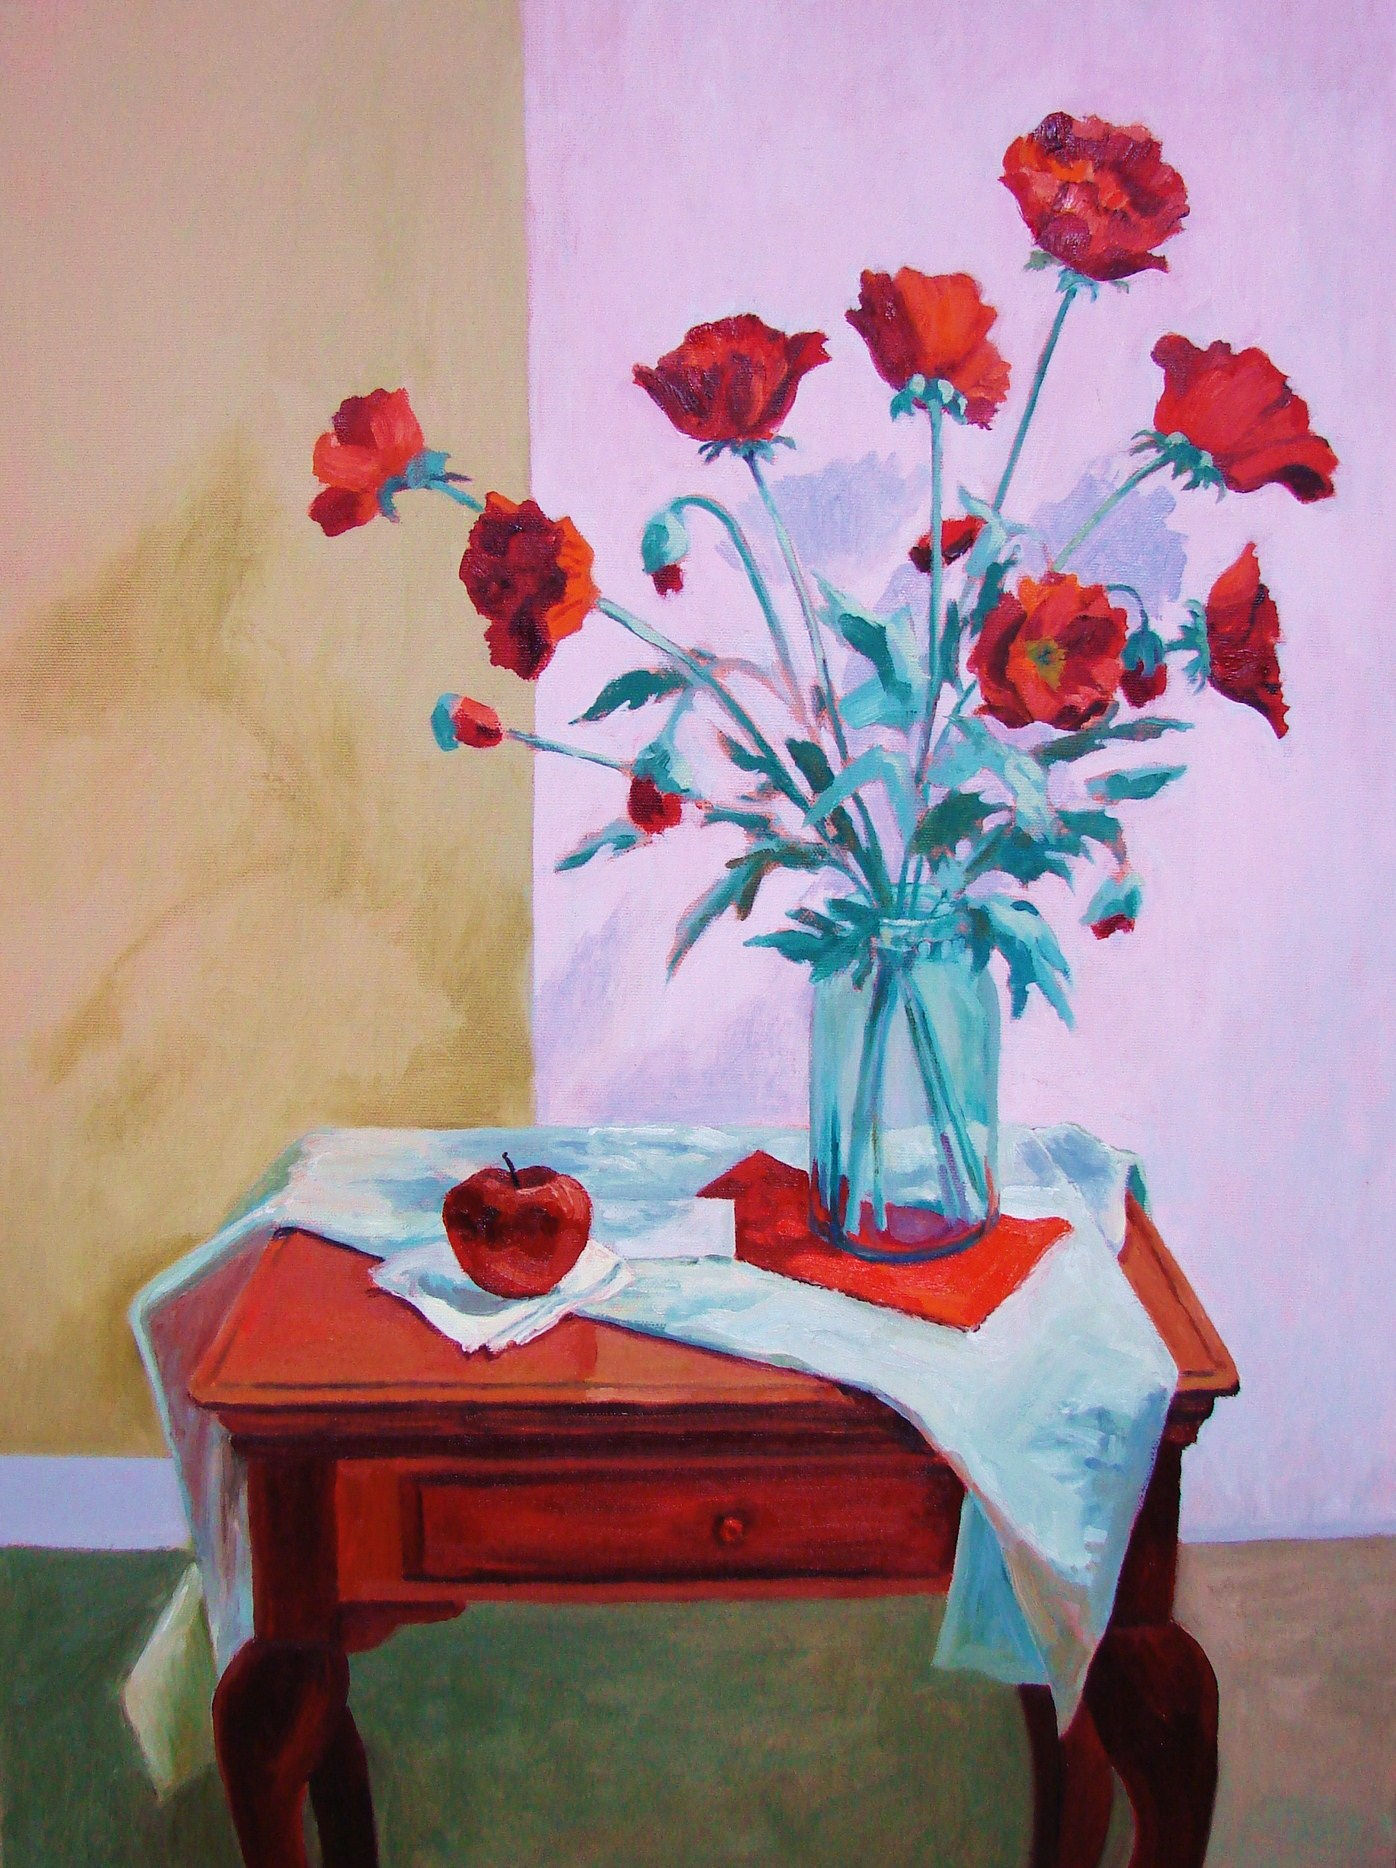 Gram's Sewing Table With Poppies.JPG